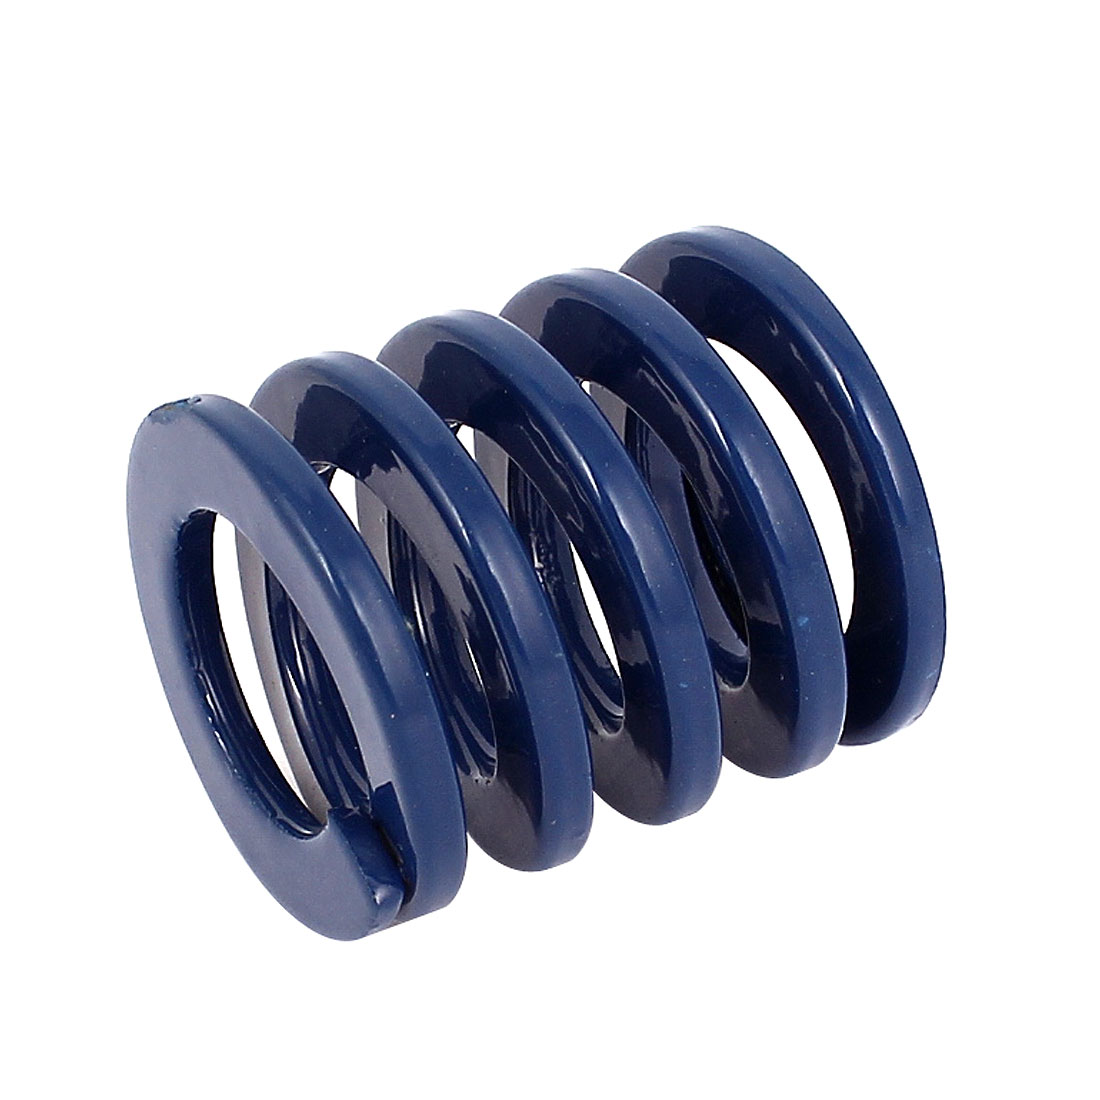 30mm OD 30mm Long Coil Light Load Stamping Compression Mold Die Spring Blue